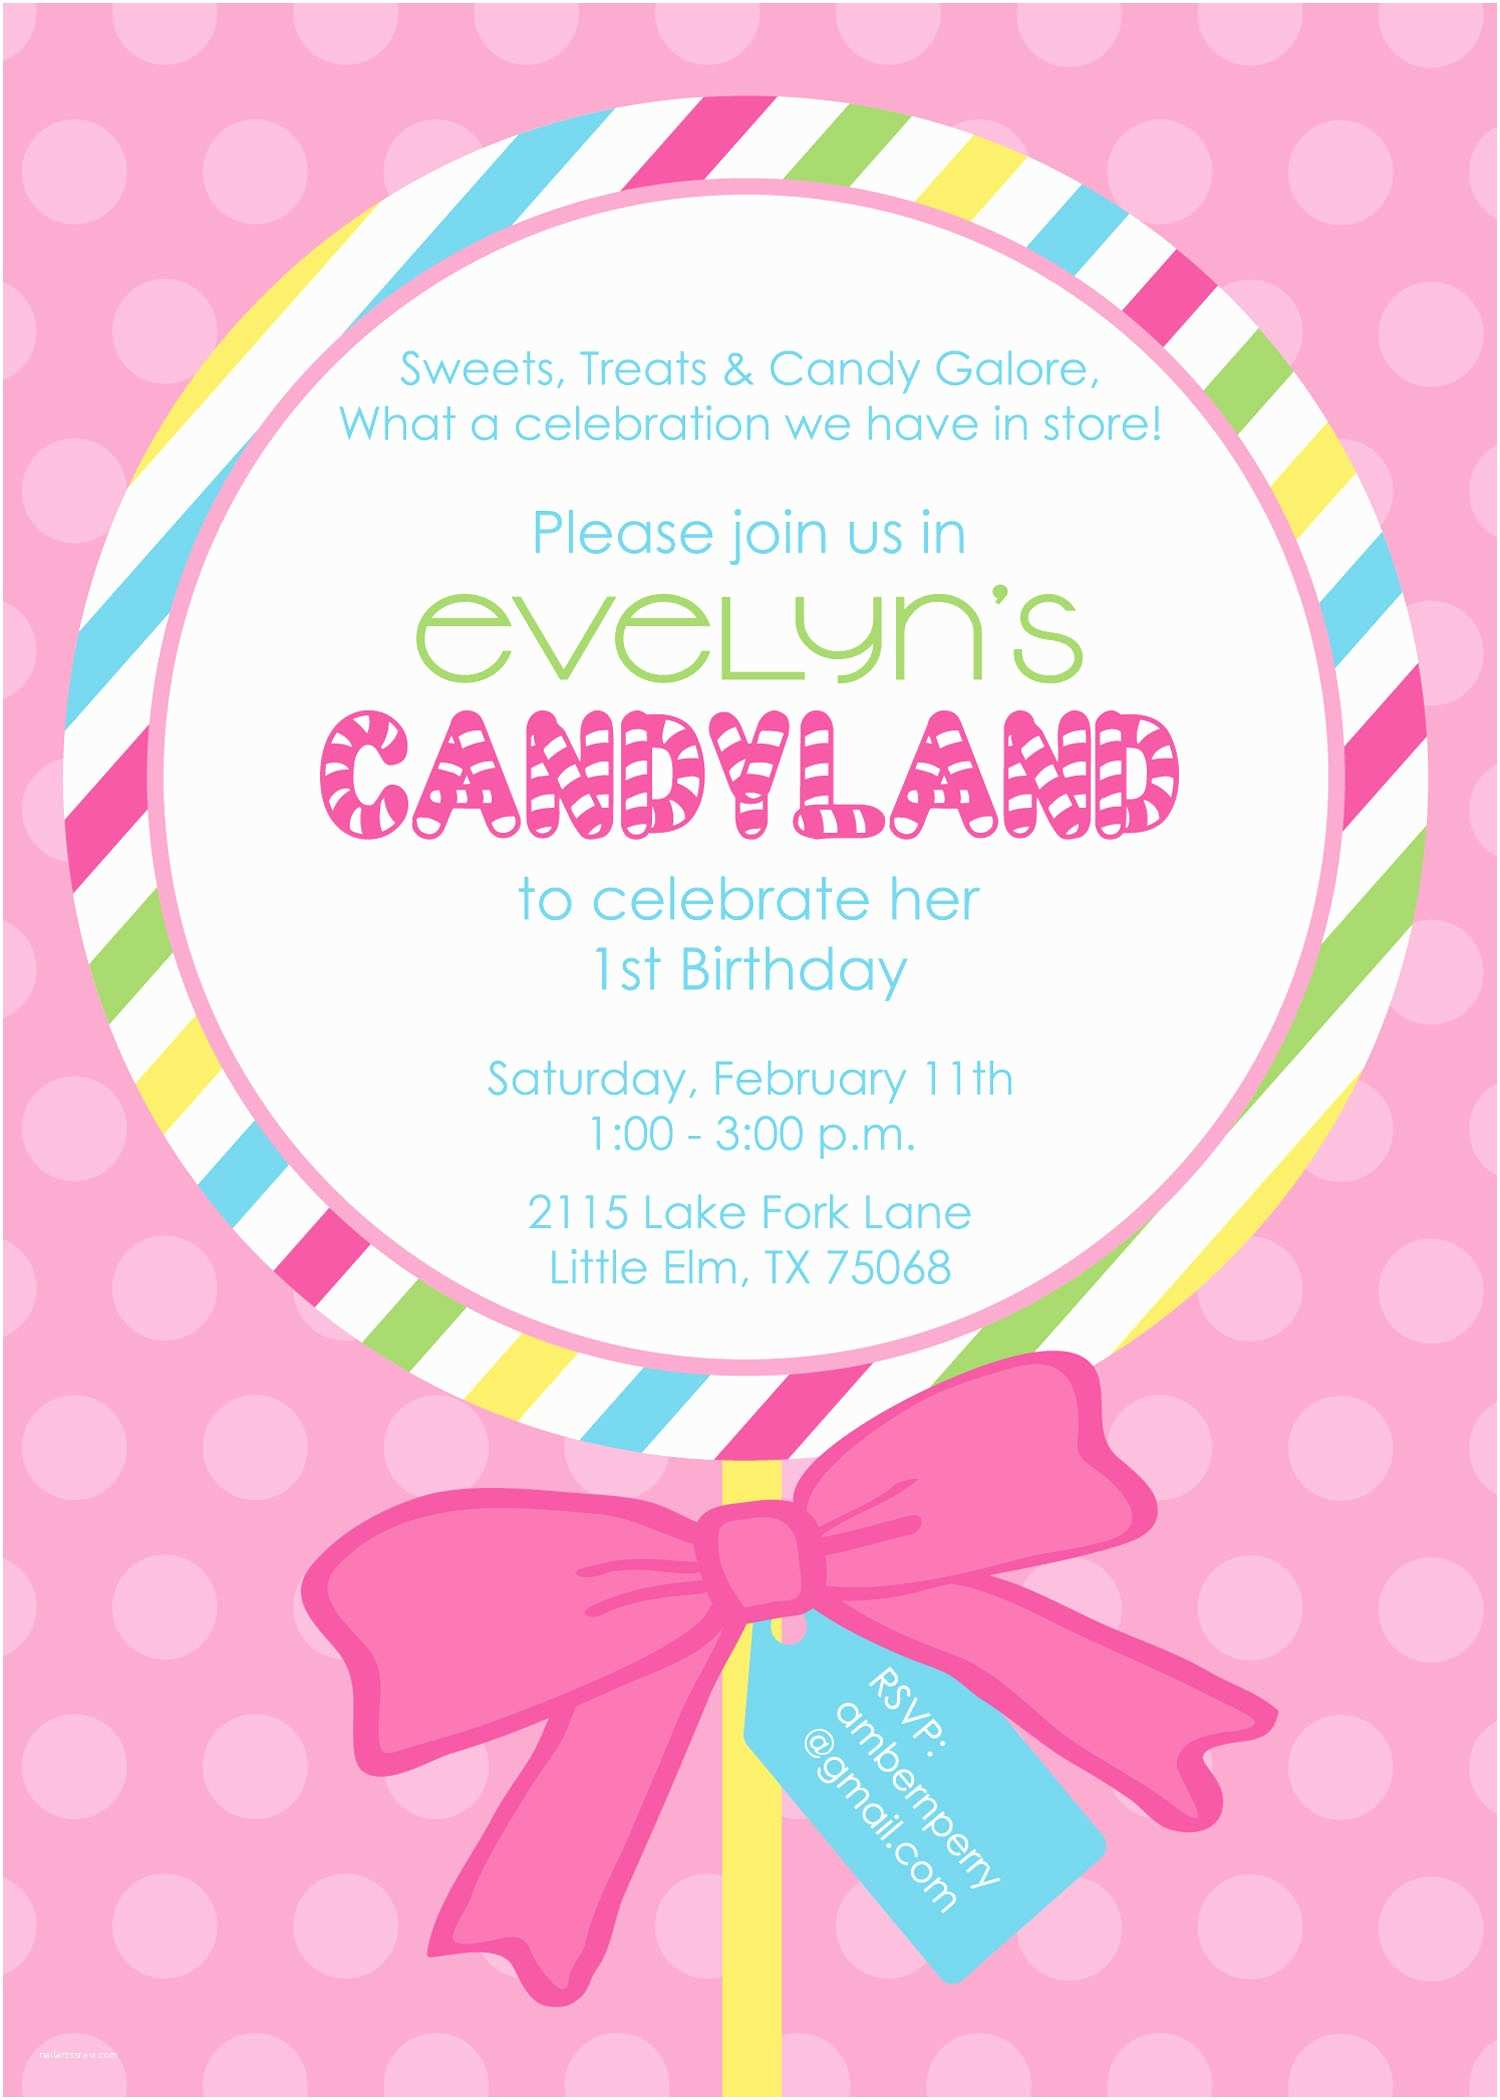 Candyland Baby Shower Invitations Invitations & Announcements By Kim Patton At